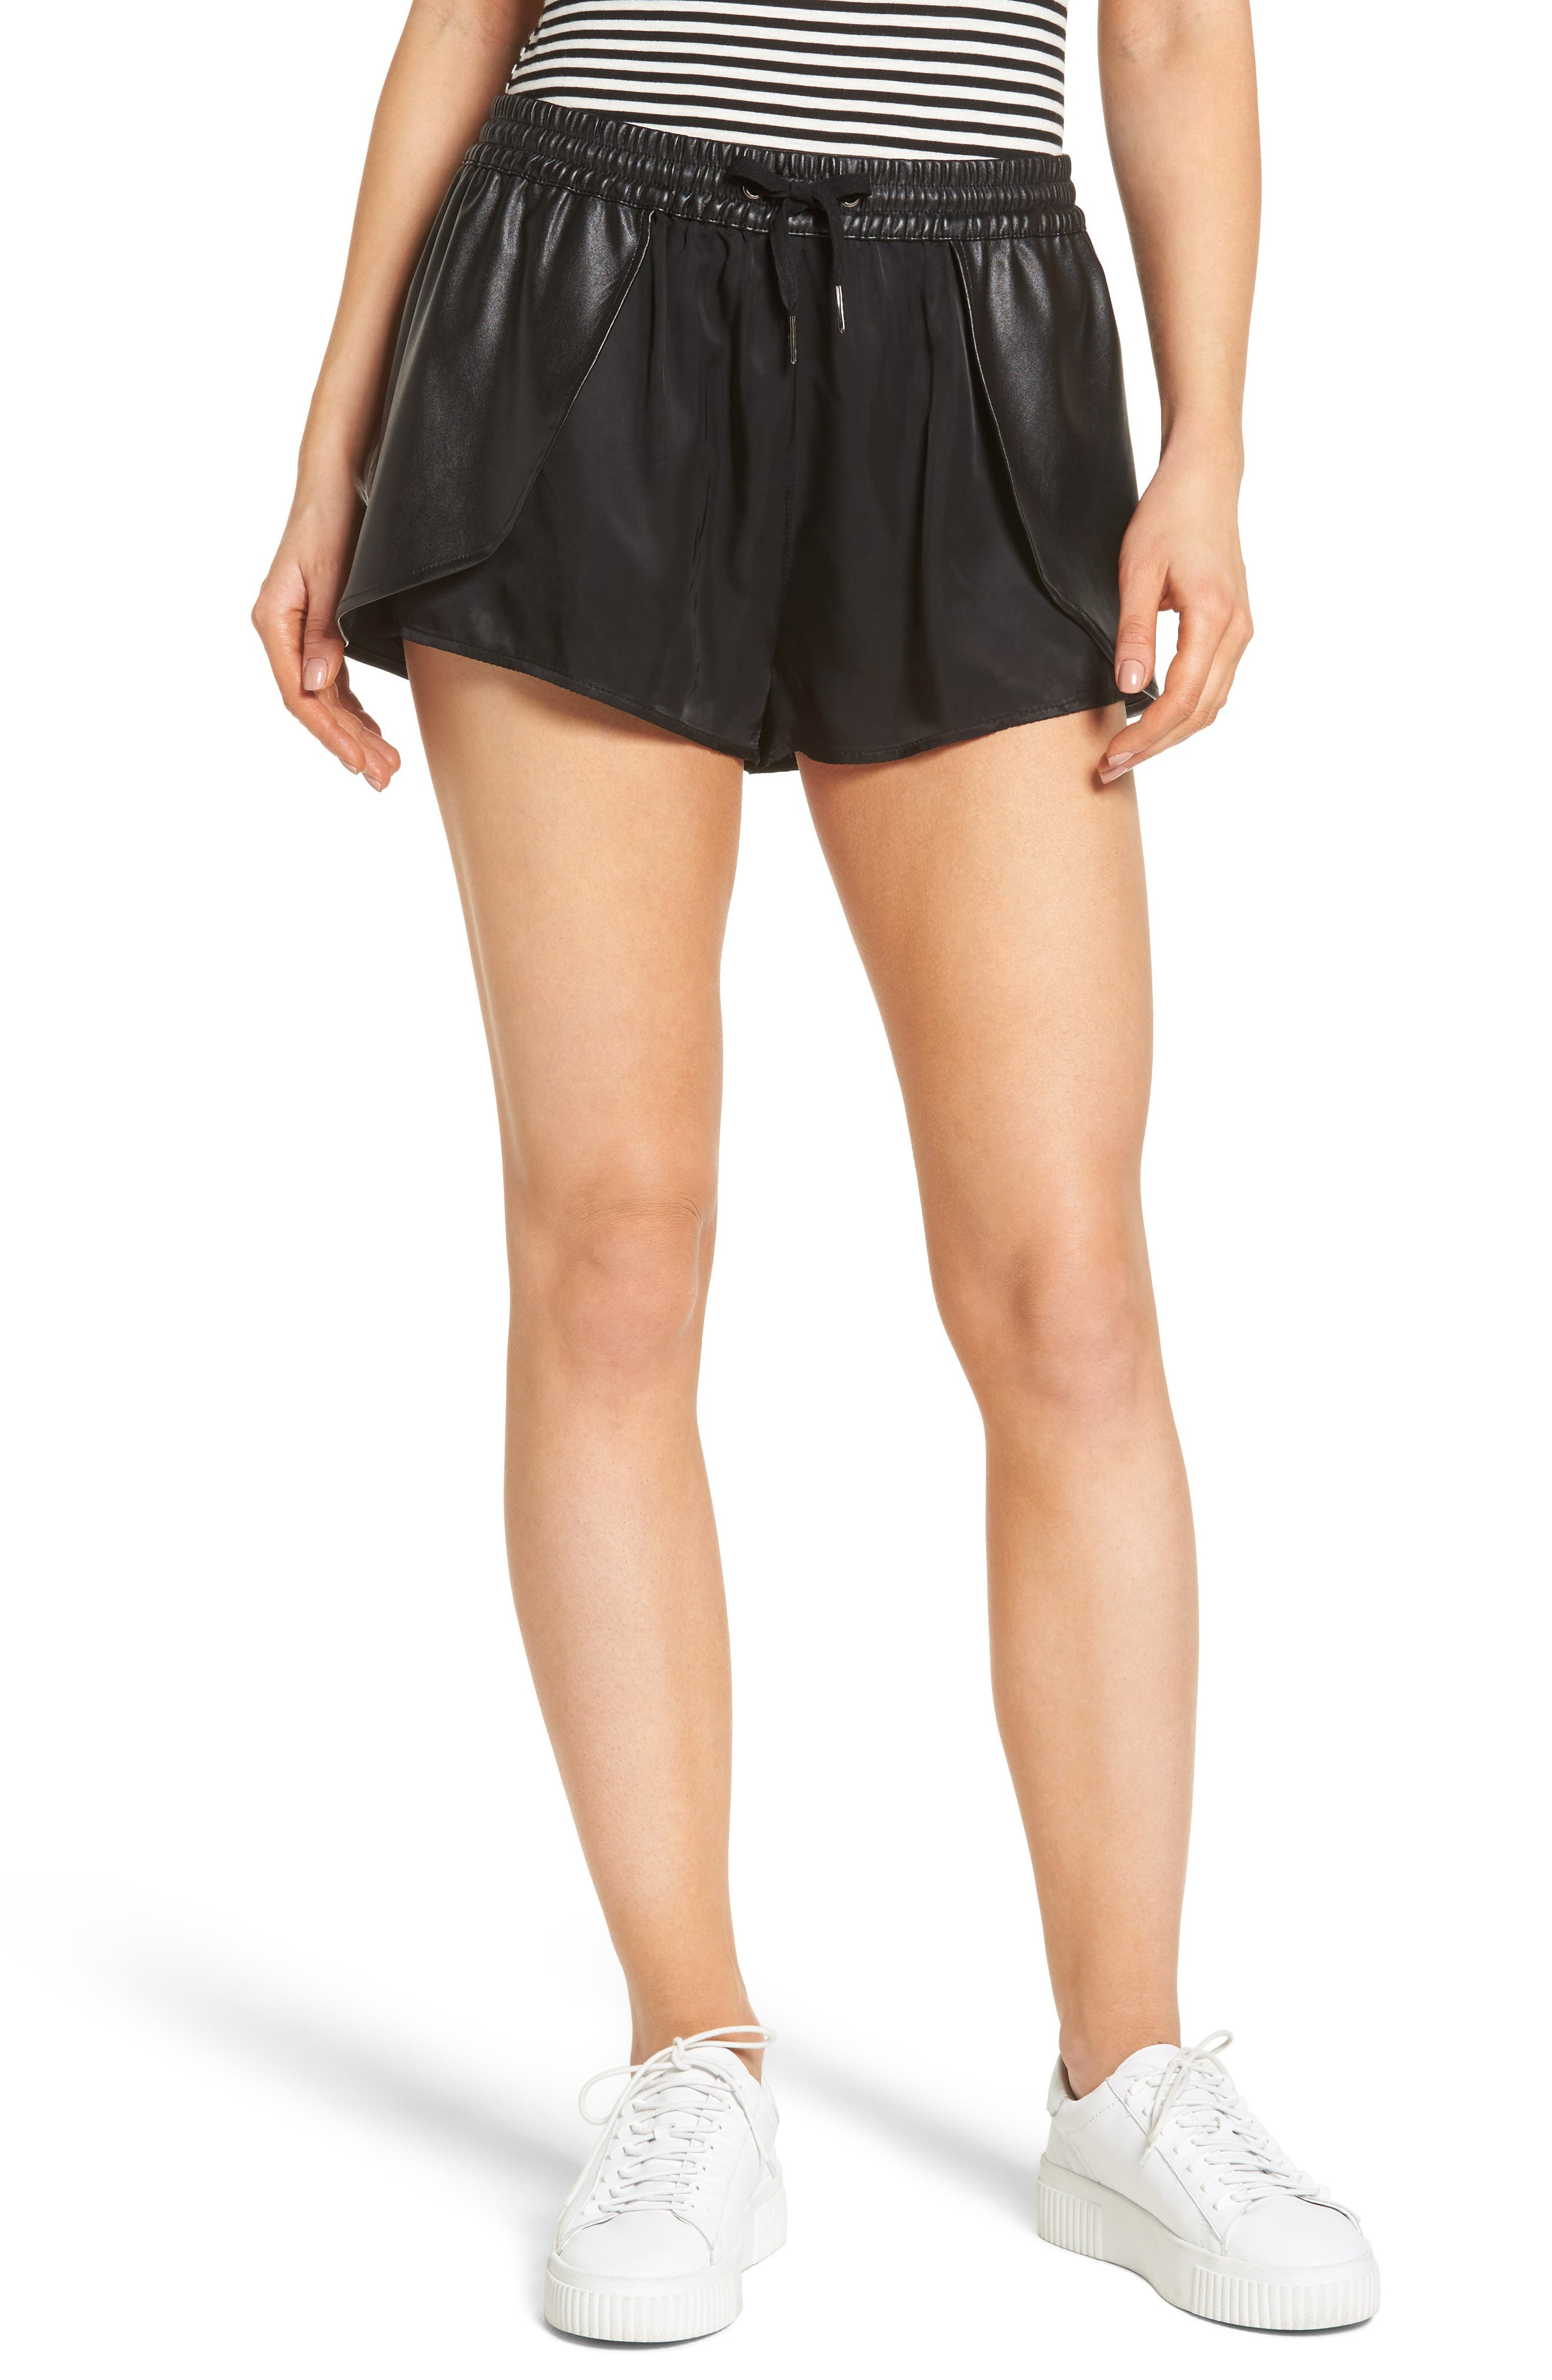 BLANKNYC Hugs & Kisses Faux Leather Trim Skort